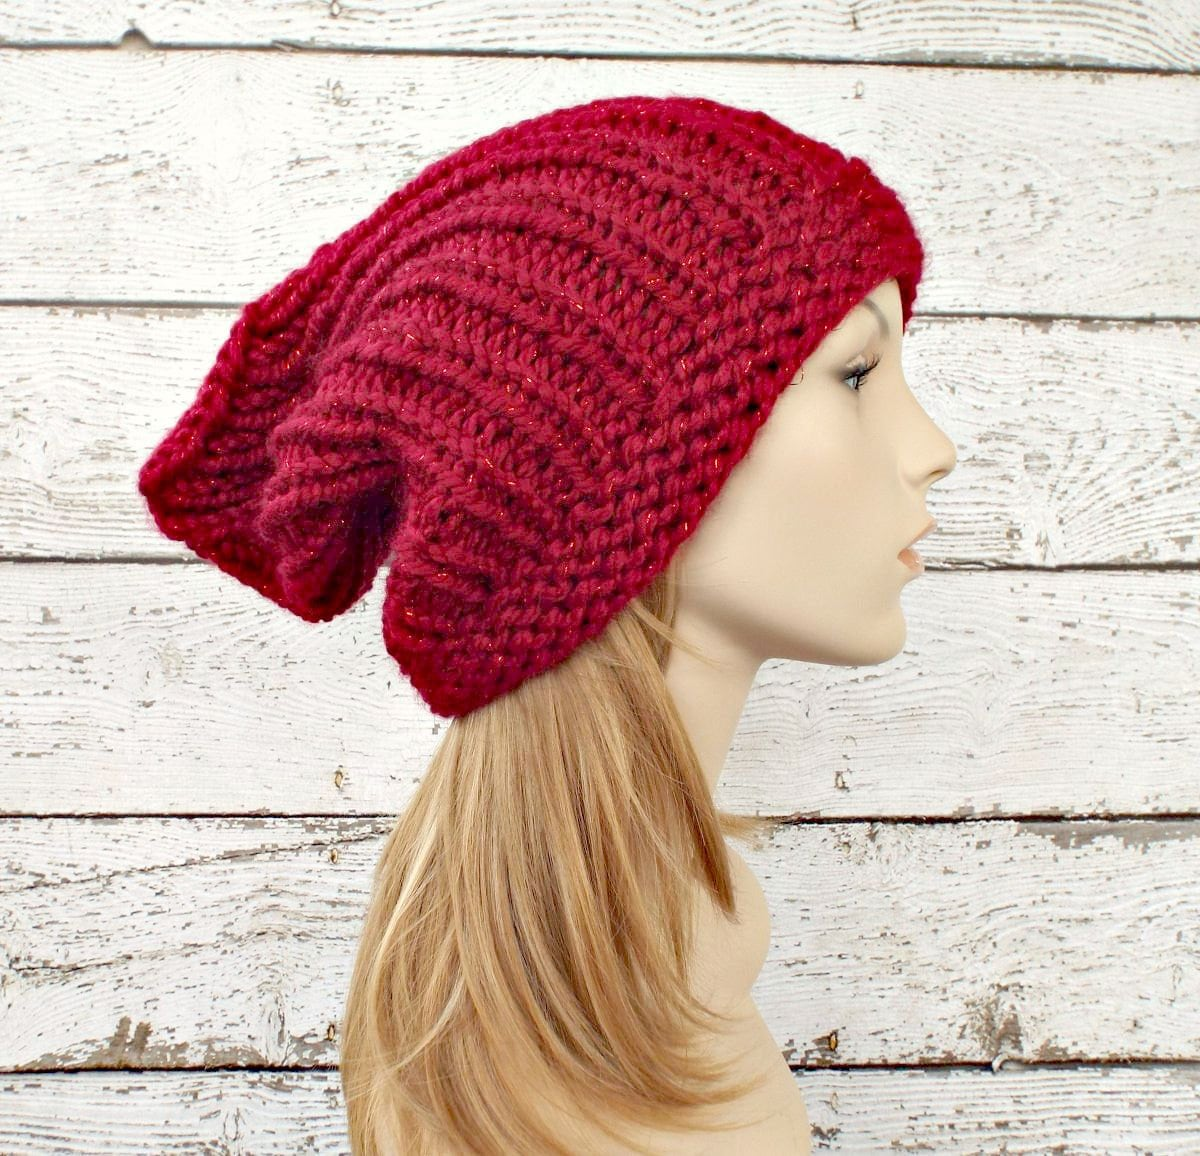 b8f53adaeed Red Womens Hat Slouchy Hat - Quinn Red Gnome Beanie - Poinsettia Red Knit  Hat - Red Hat Red Beanie Red Gnome Hat Womens Accessories